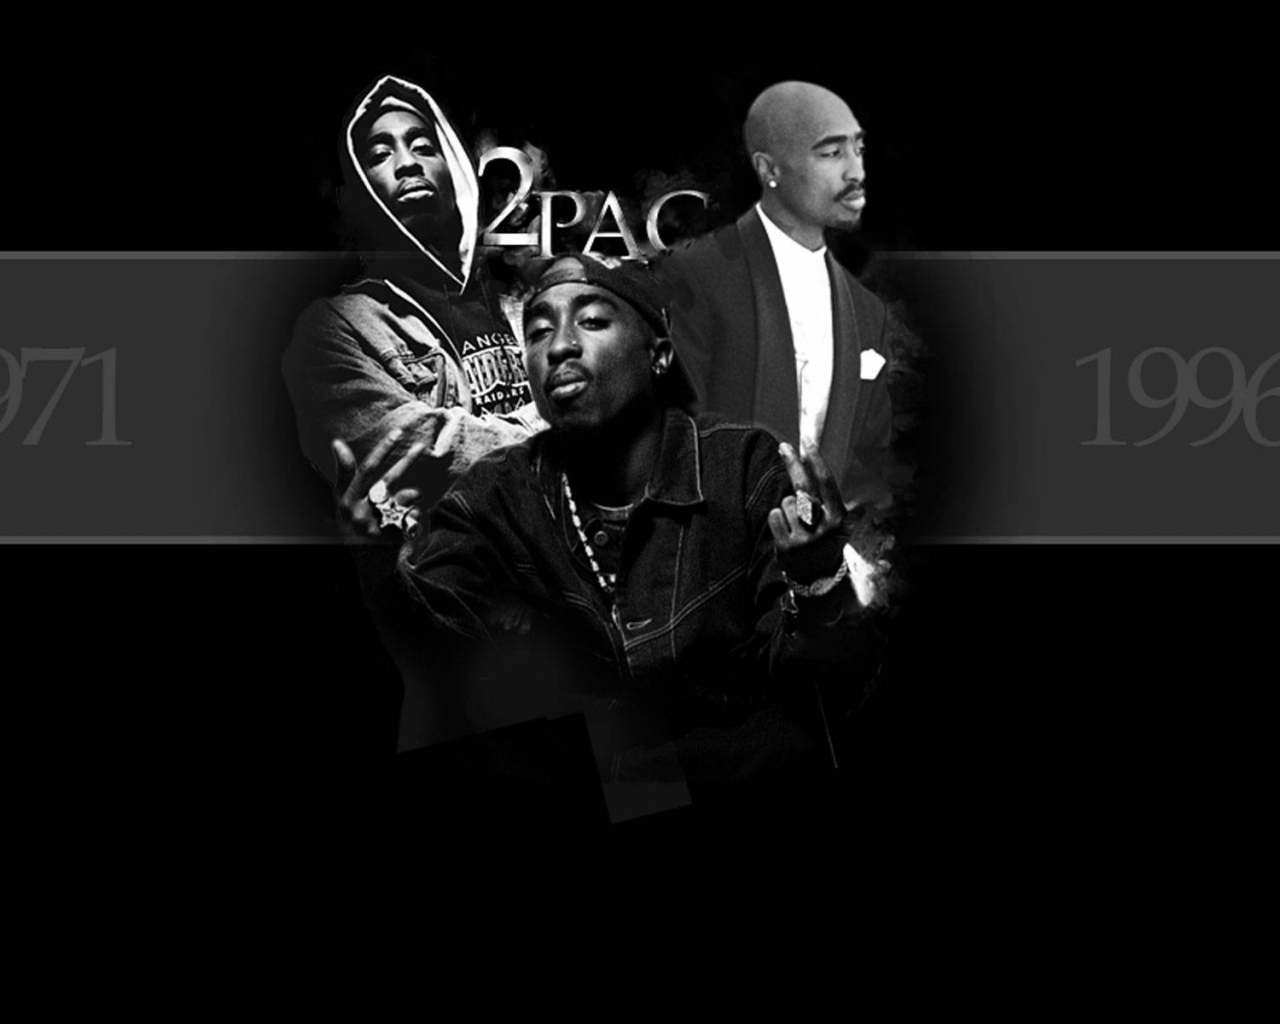 Free Download 2pac Shakur Rest In Peace Photo Wallpaper 2pac